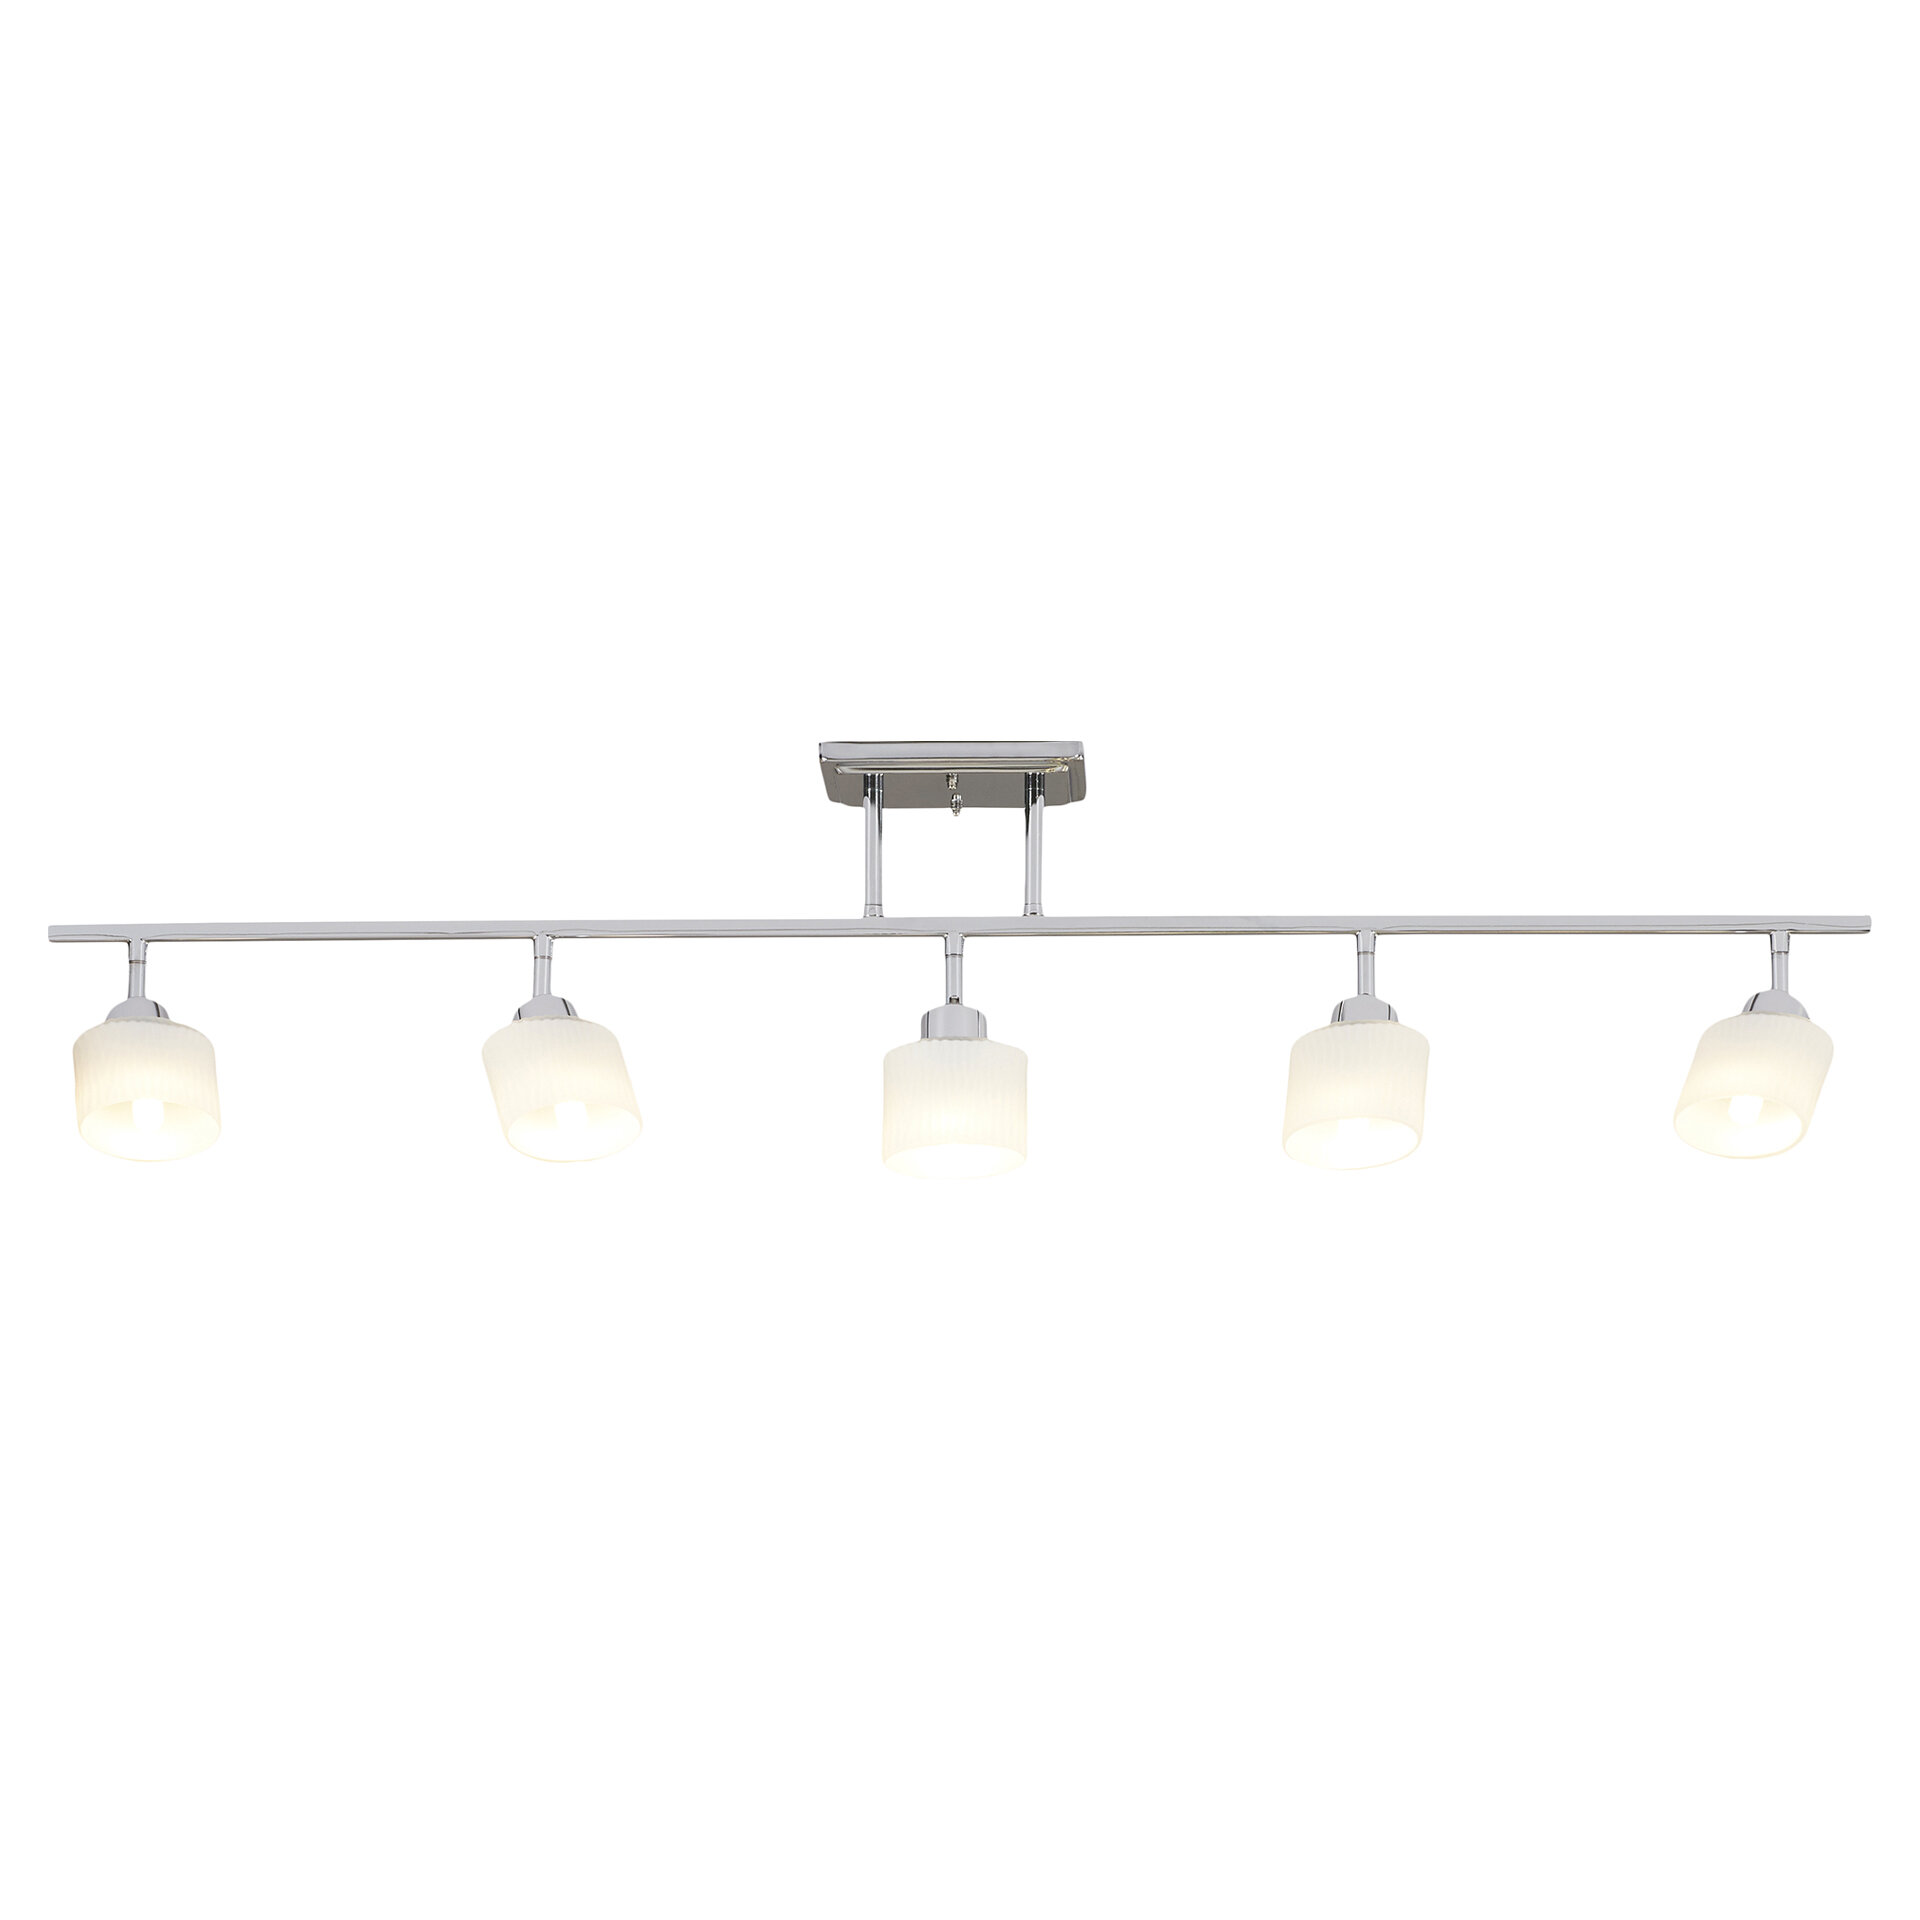 Moody 5 light track lighting kit reviews allmodern